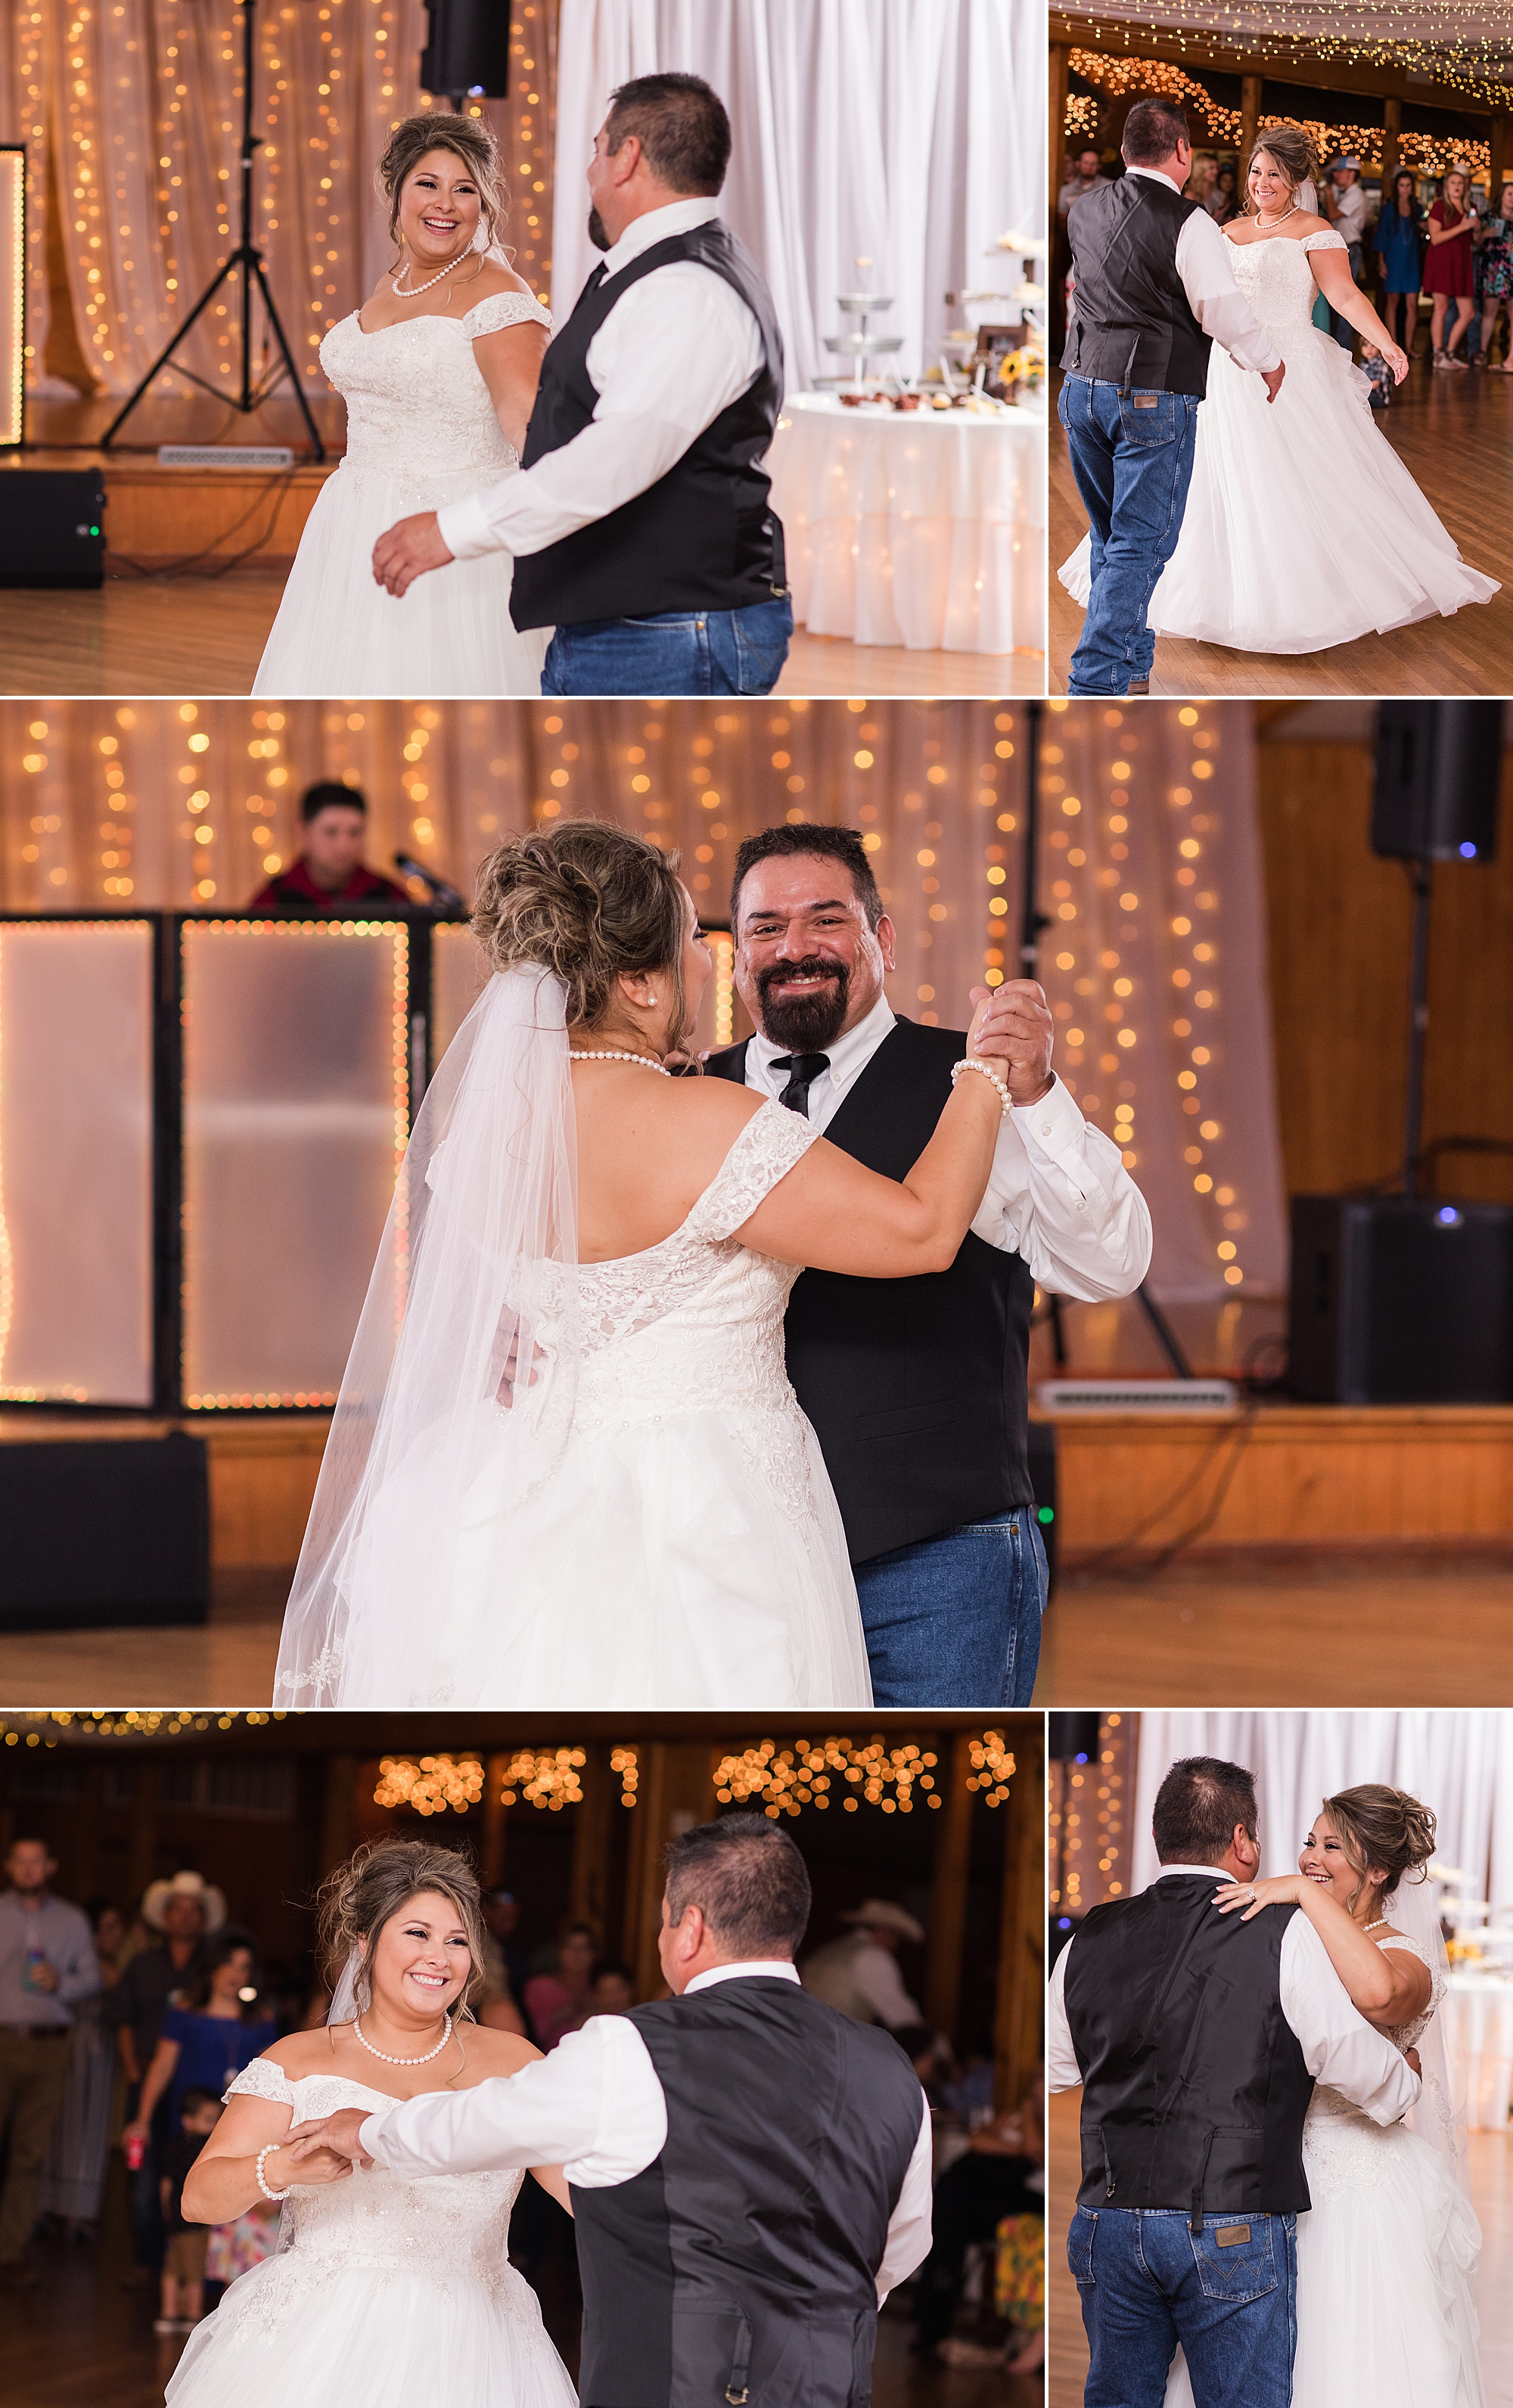 Bride,Carly Barton Photography,Texas,Wedding,ceremony,groom,reception,